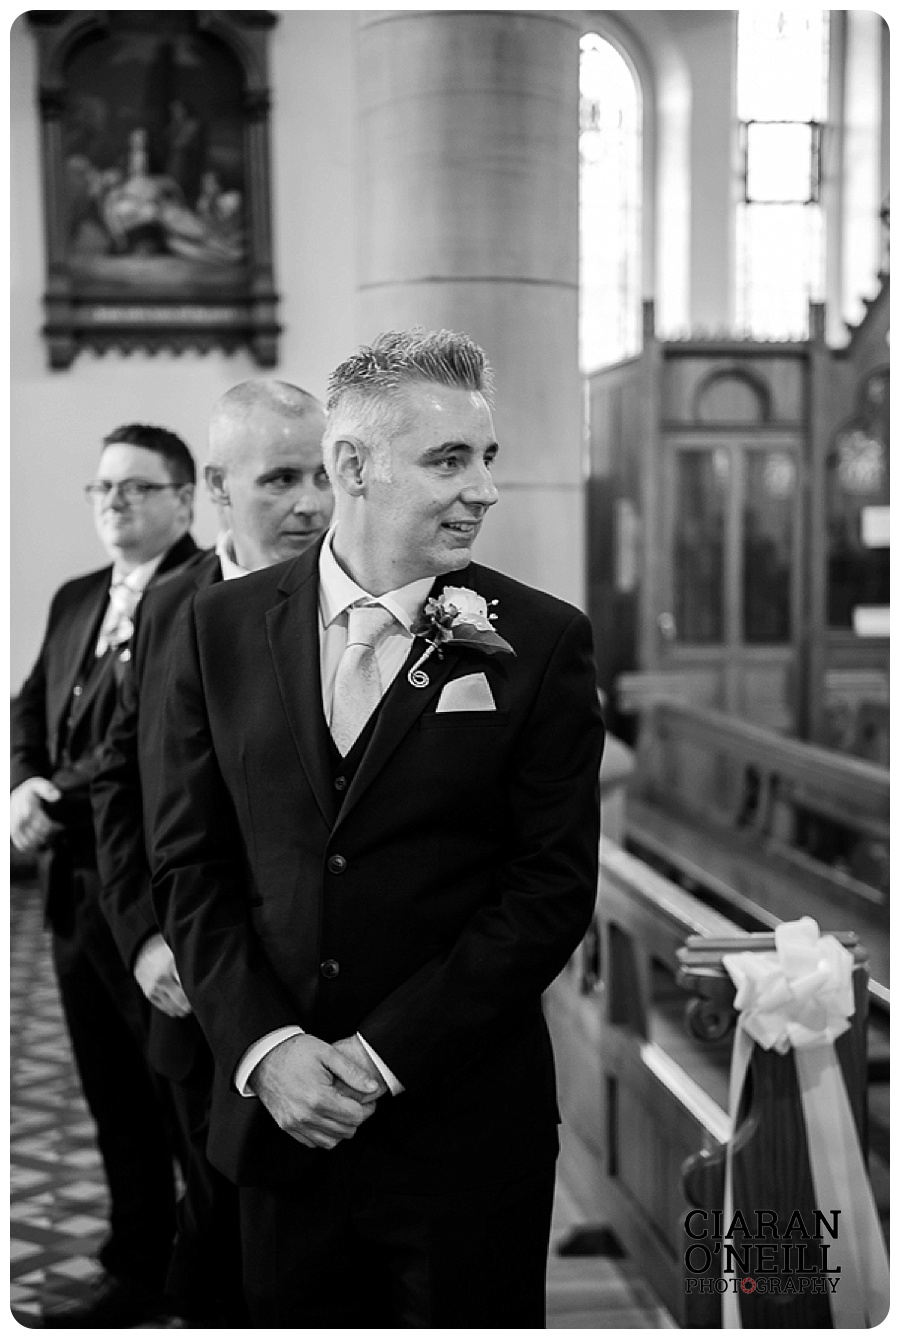 shauna-steves-wedding-at-the-millbrook-lodge-hotel-by-ciaran-oneill-photography-11